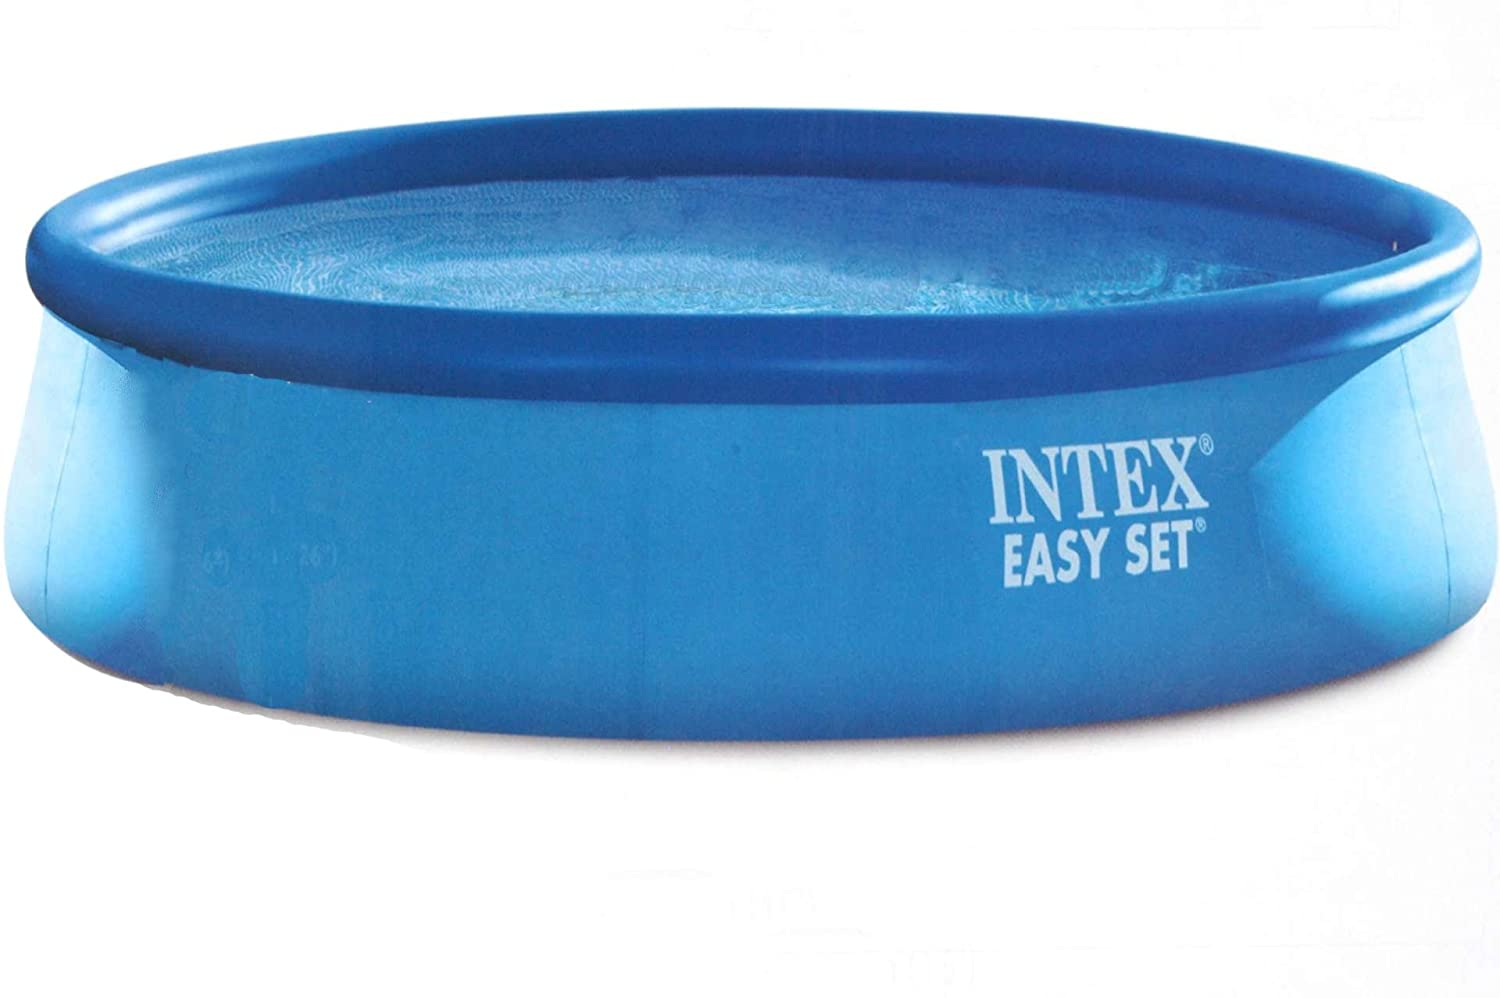 INTEX EASY POOL Set 457 x 91 cm mit Filterpumpe Planschbecke